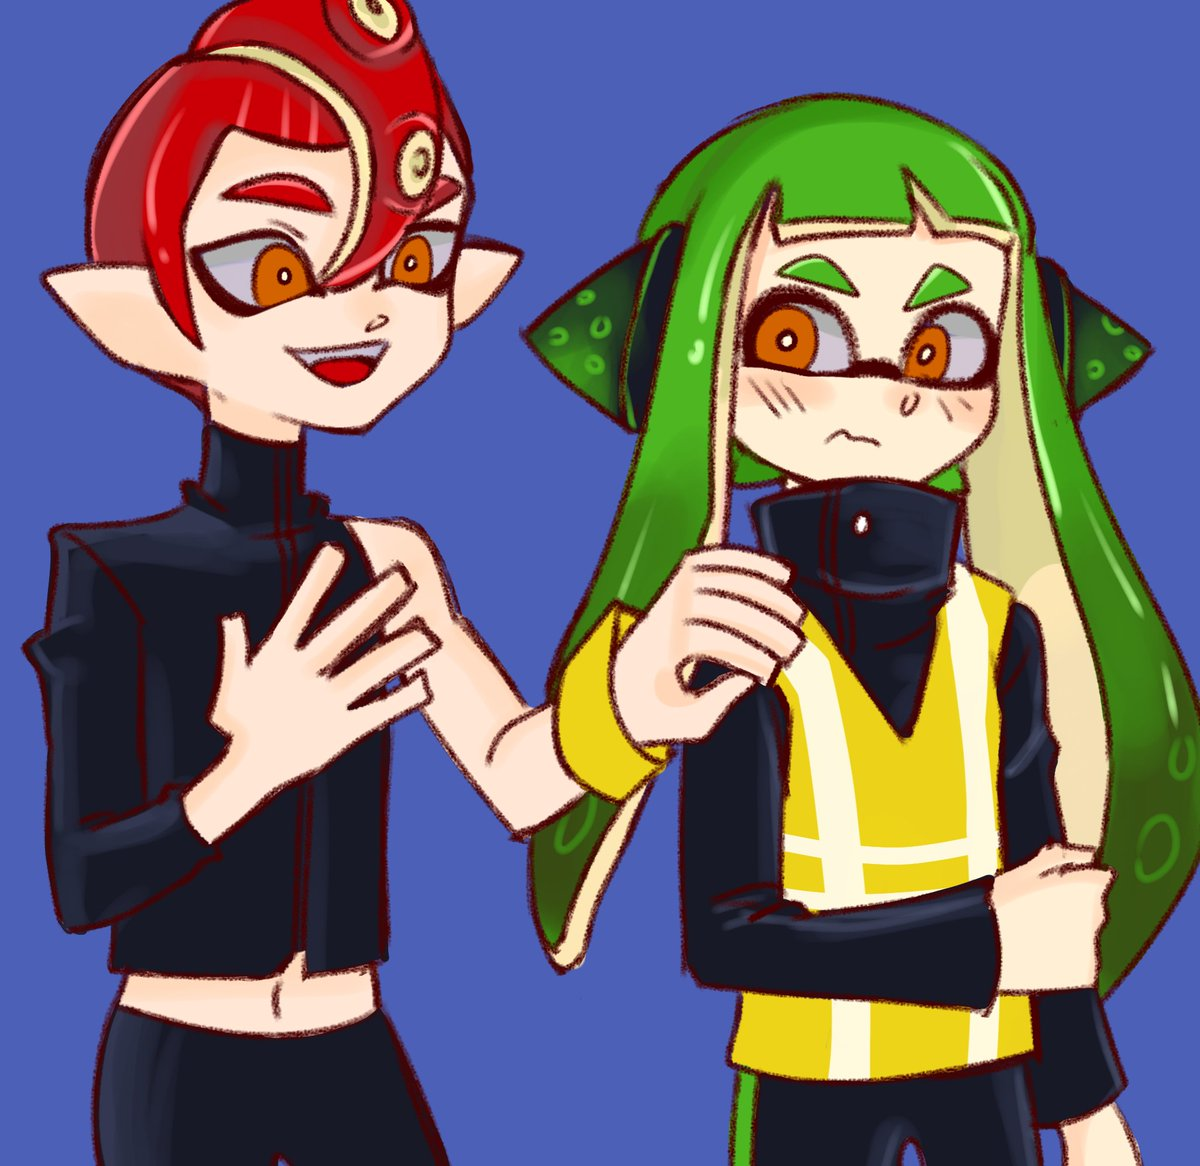 agent8 hashtag on twitter